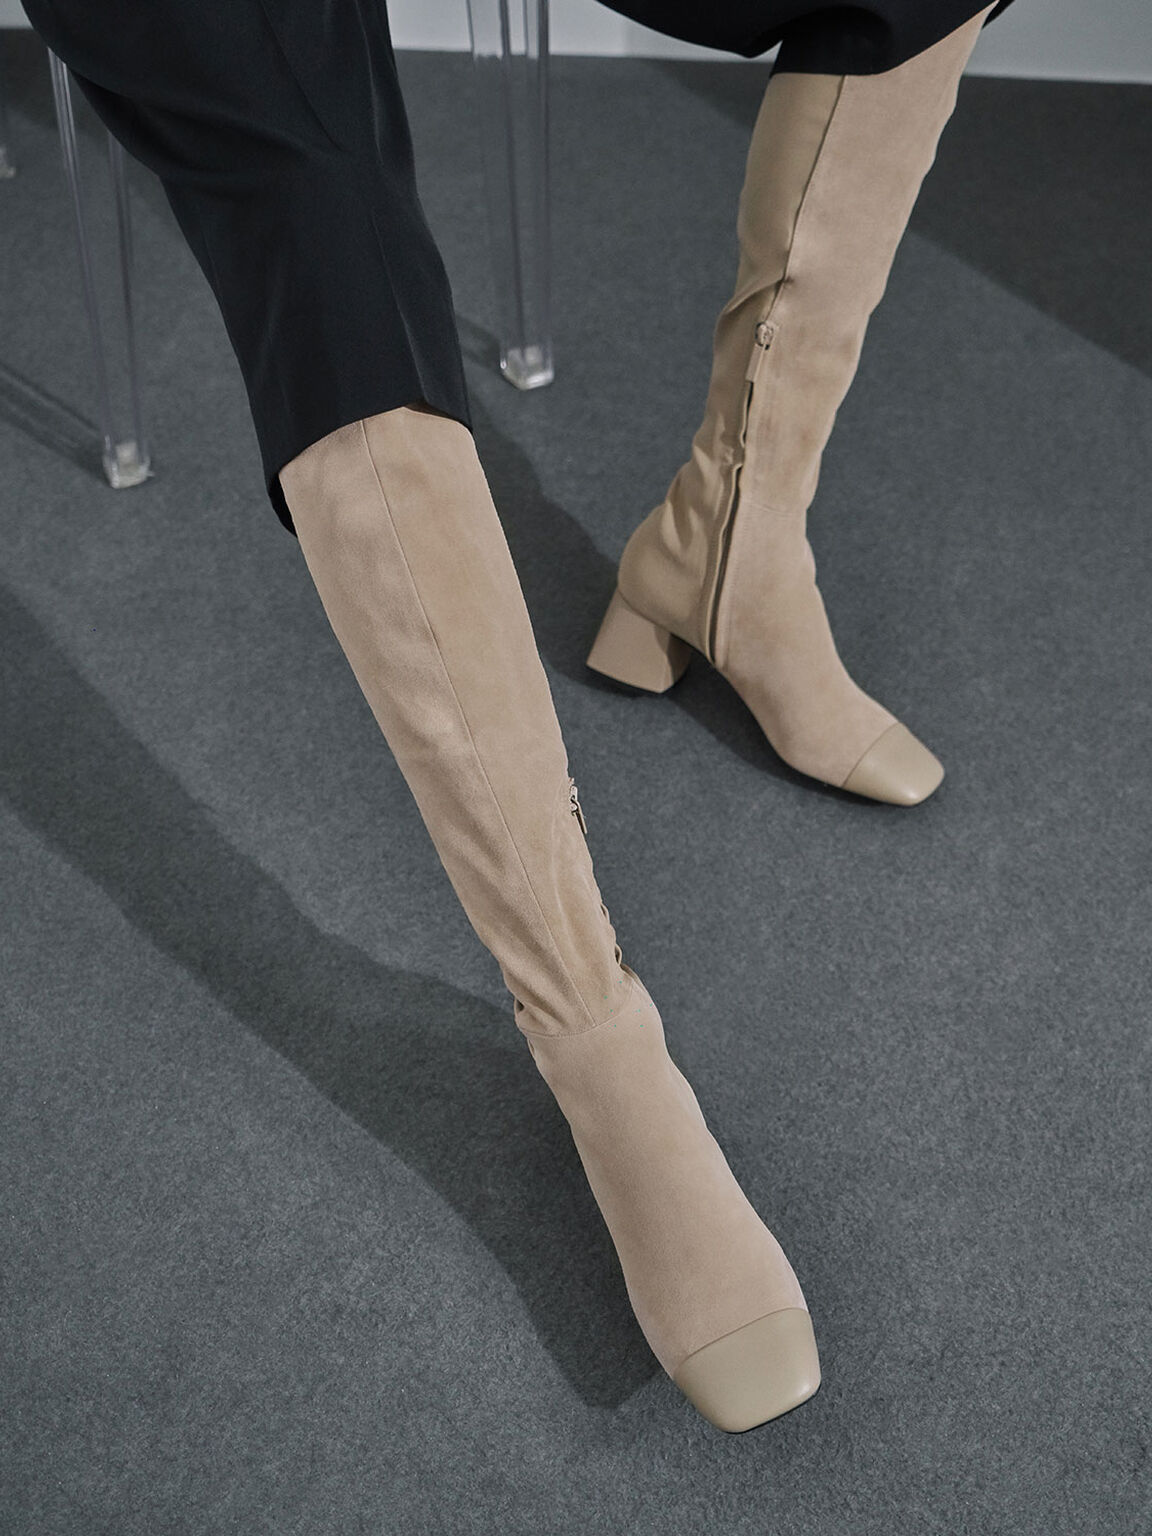 Leather & Kid Suede Thigh High Boots, Sand, hi-res